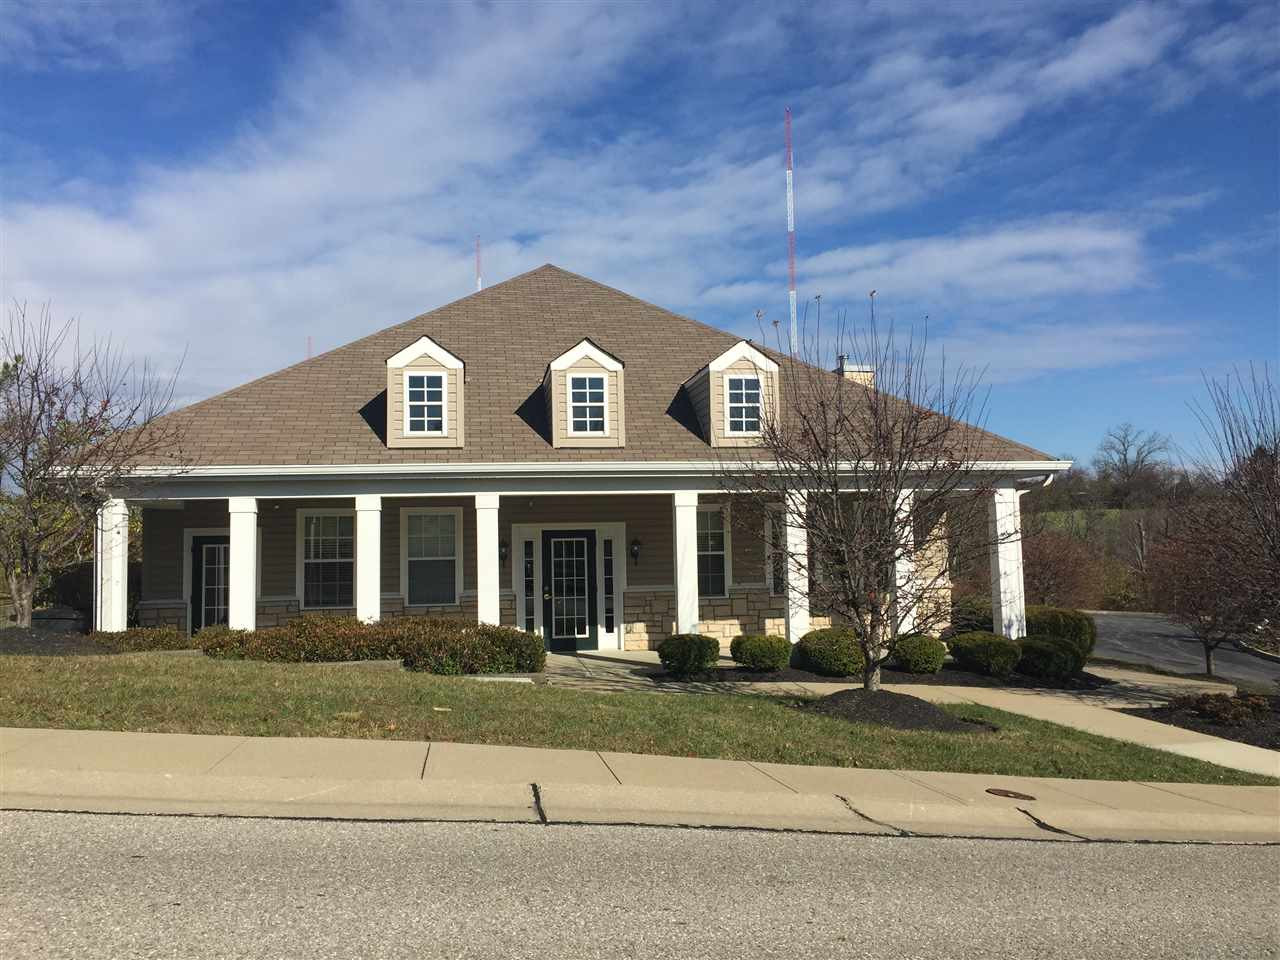 Photo 2 for 521 Ivy Ridge Drive Cold Spring, KY 41076